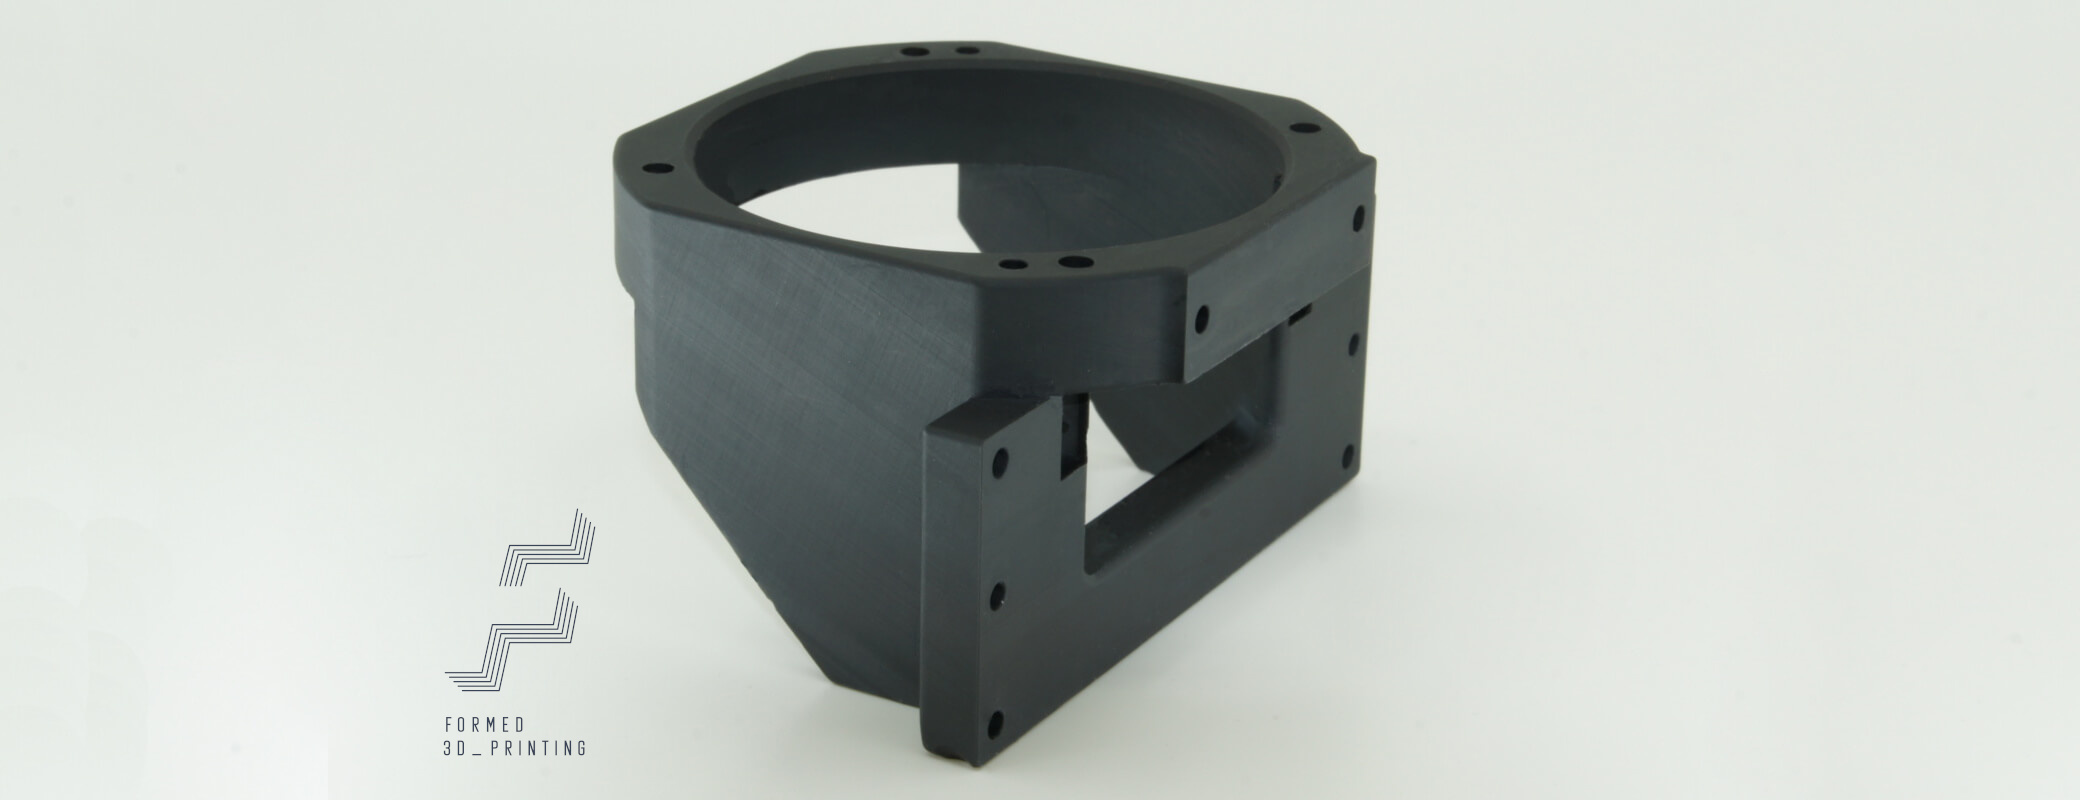 3d printing service, Oculox Technologies trusts FORMED for 3D printing of high resolution functional parts